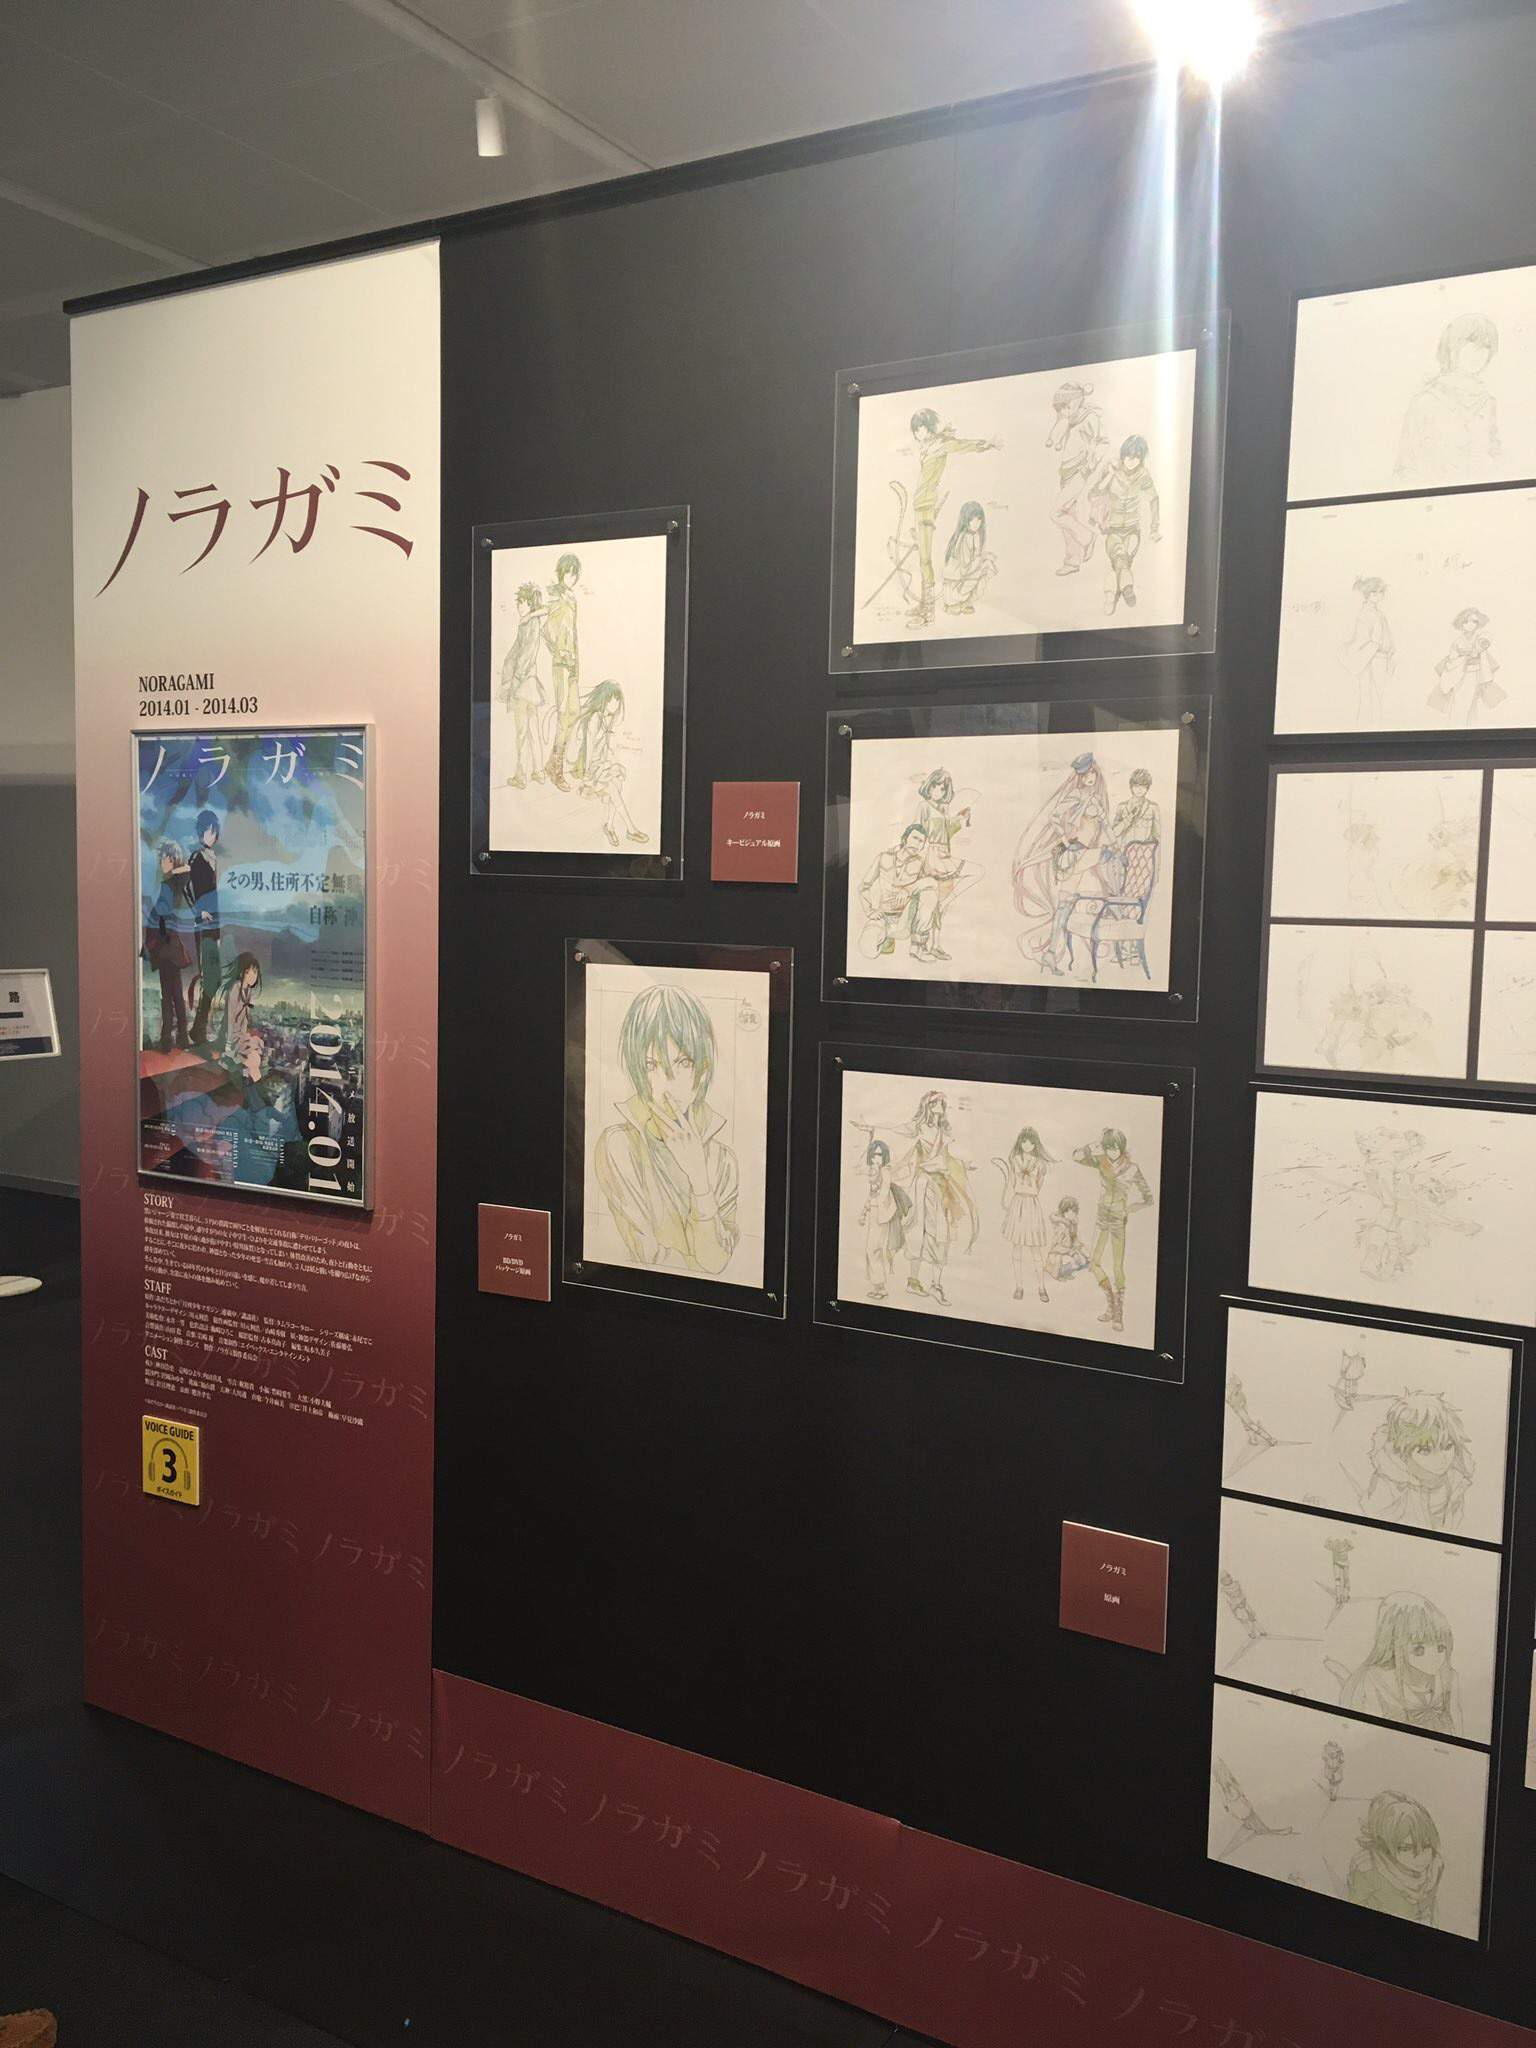 Noragami At The Studio Bones 20th Anniversary Exhibition Noragami Amino